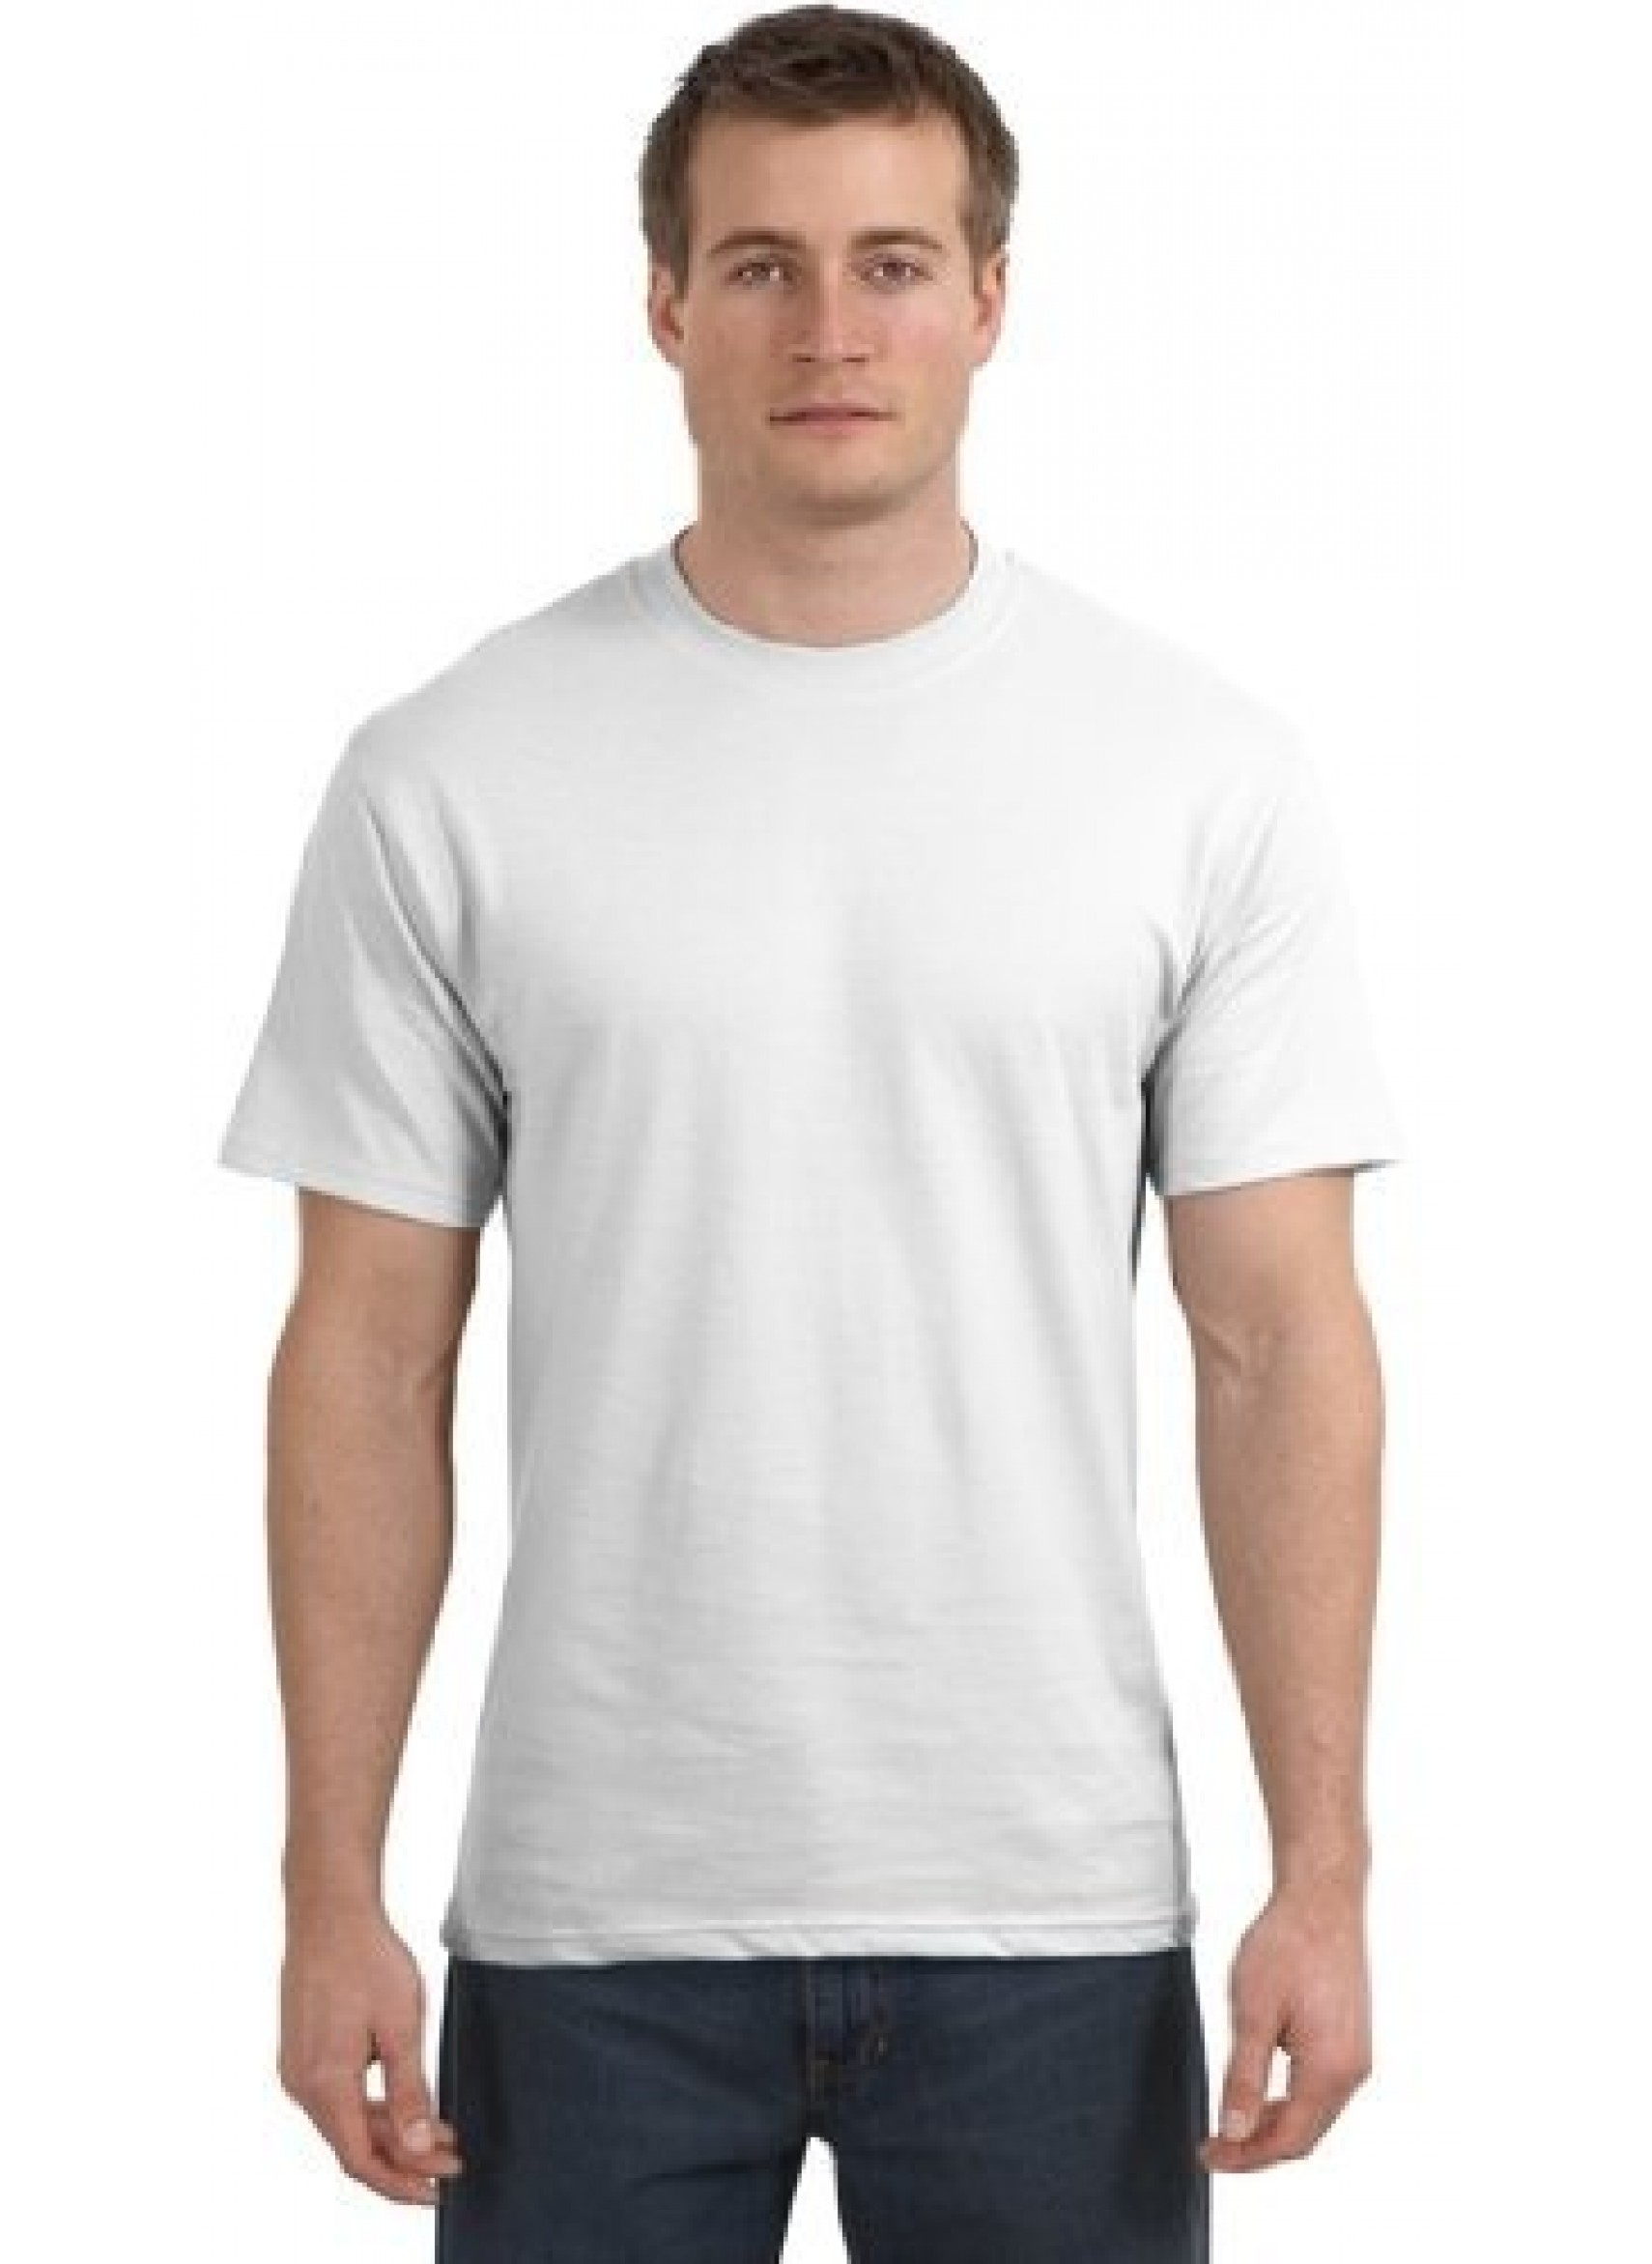 Hanes men 39 s beefy t 5180 murse world for Hanes 5180 beefy t t shirt